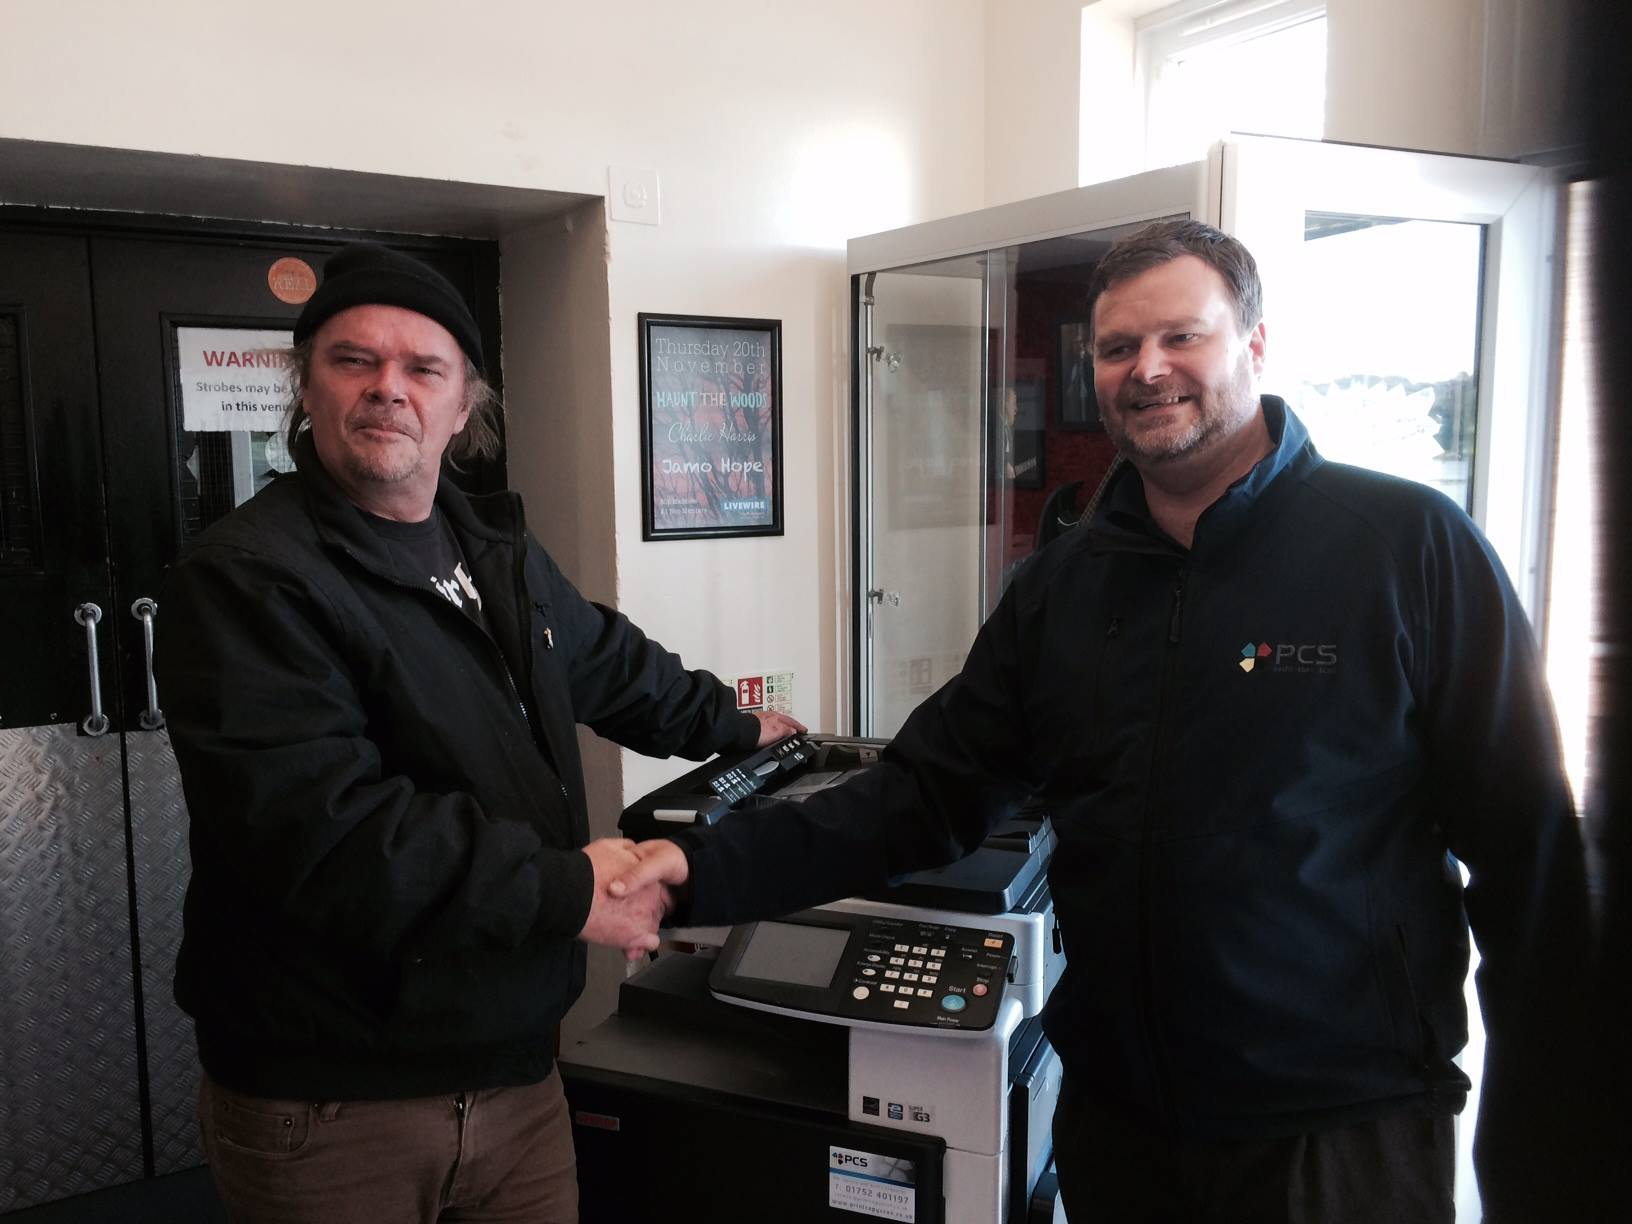 A generous donation to Livewire by local copier company